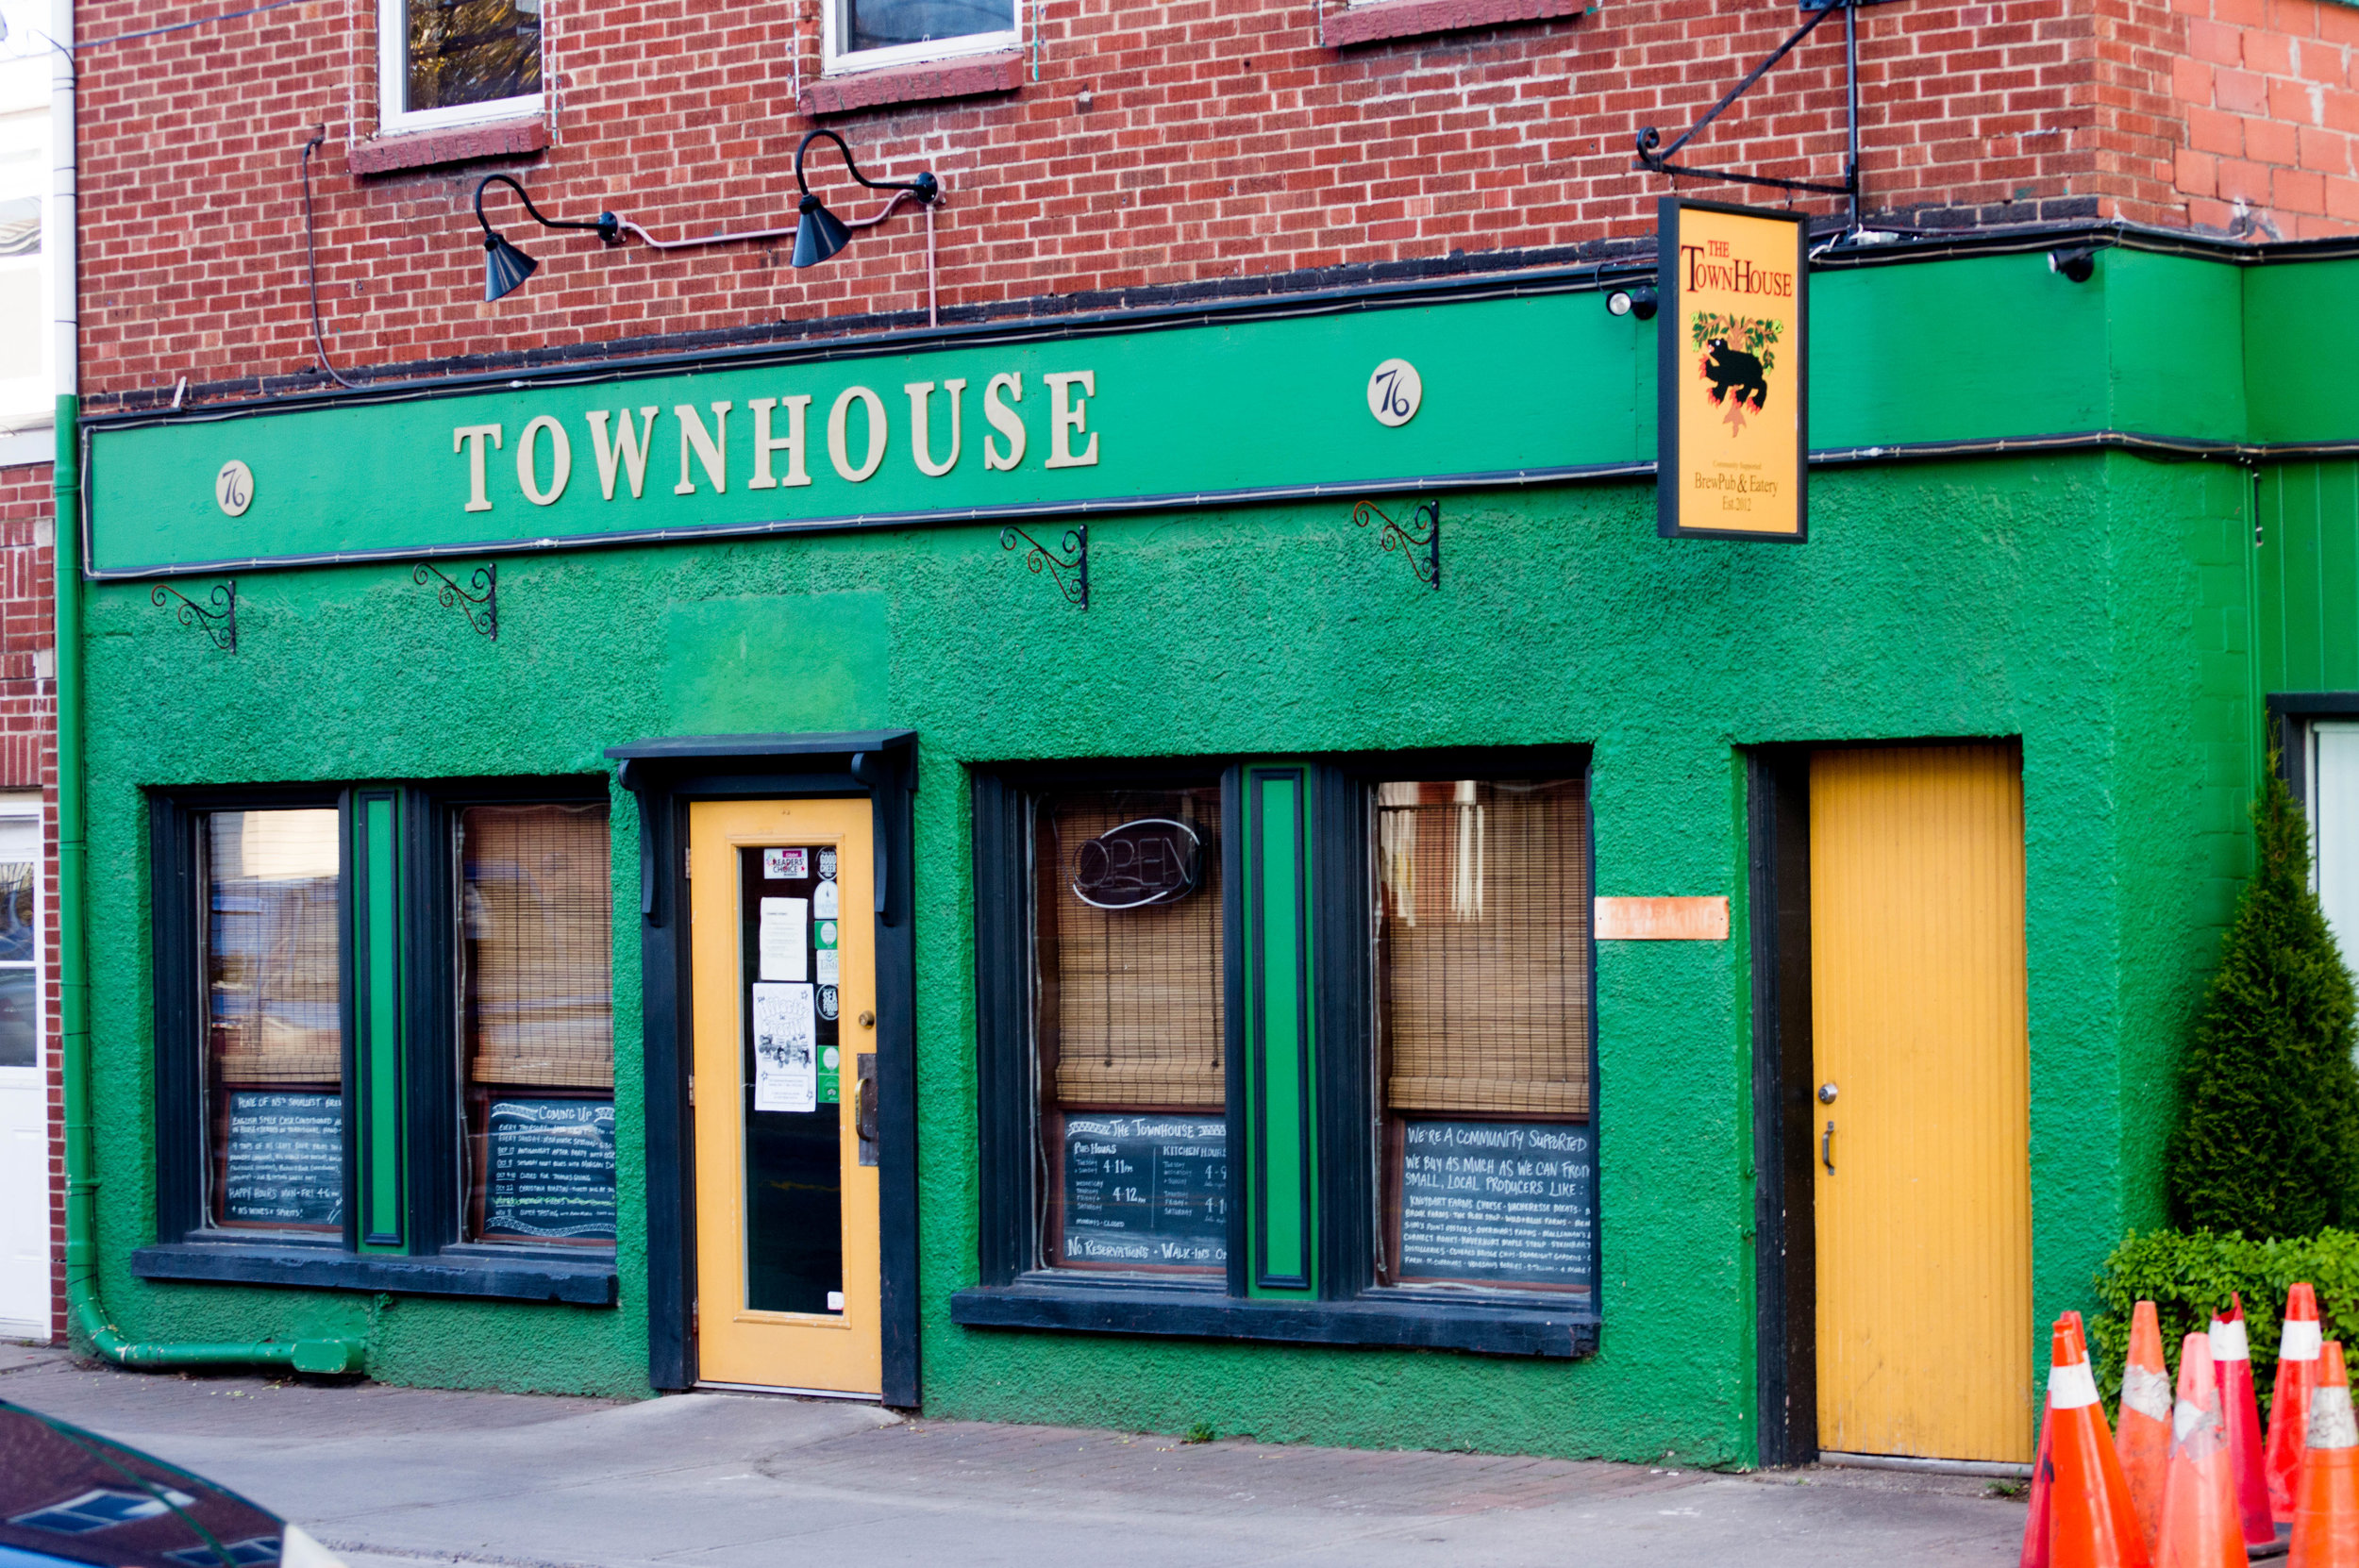 An outside view of the Townhouse. Photo courtesy of Jessica Fullerton